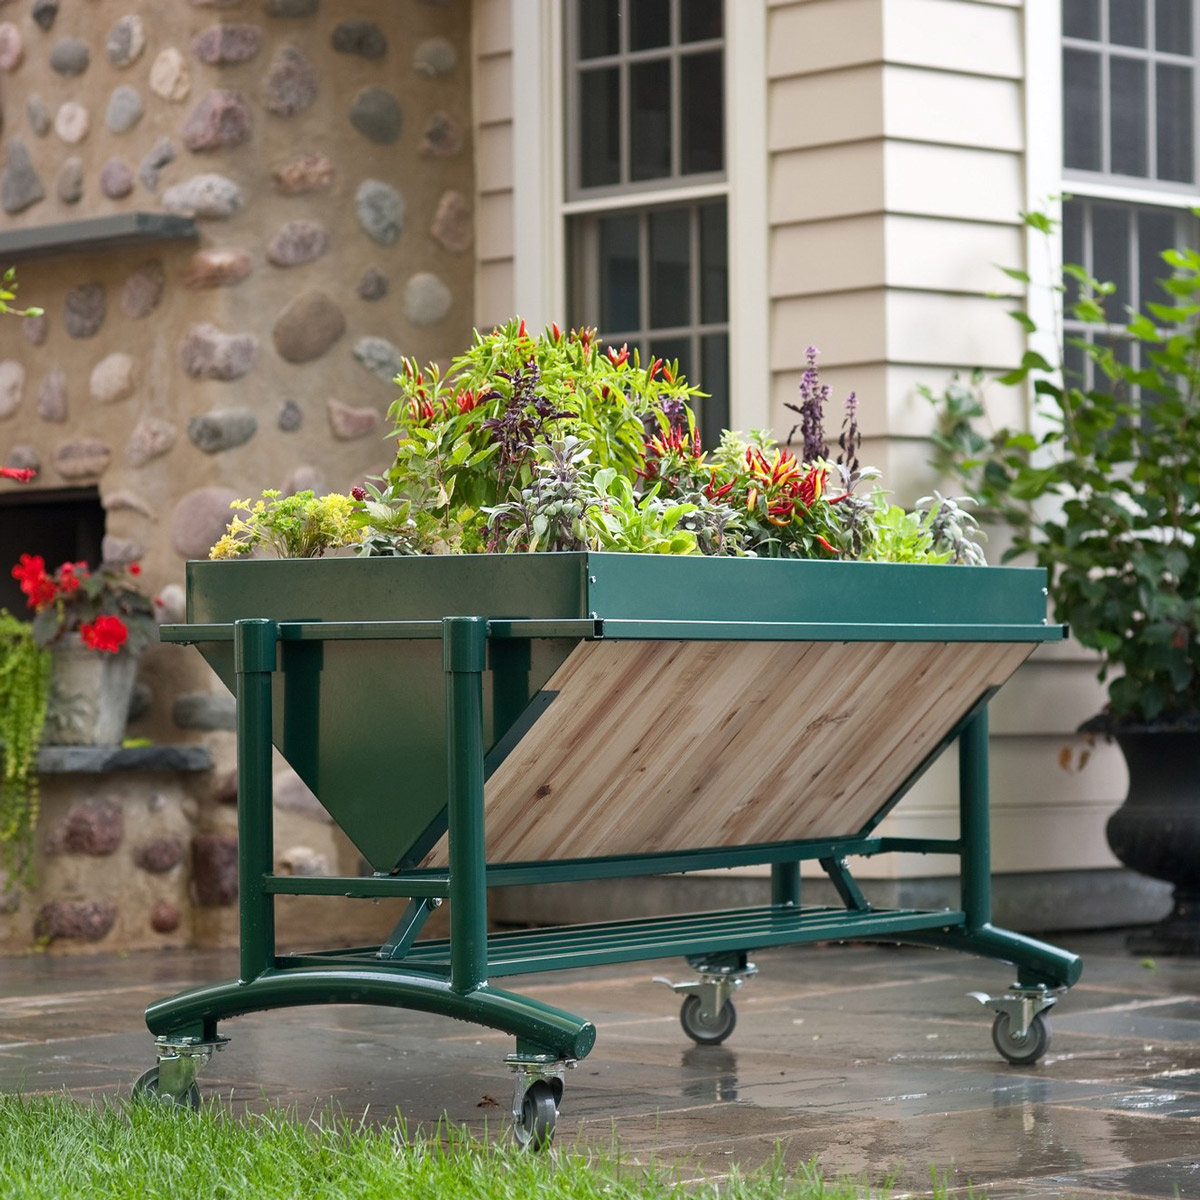 Great LGarden   Elevated Gardening System